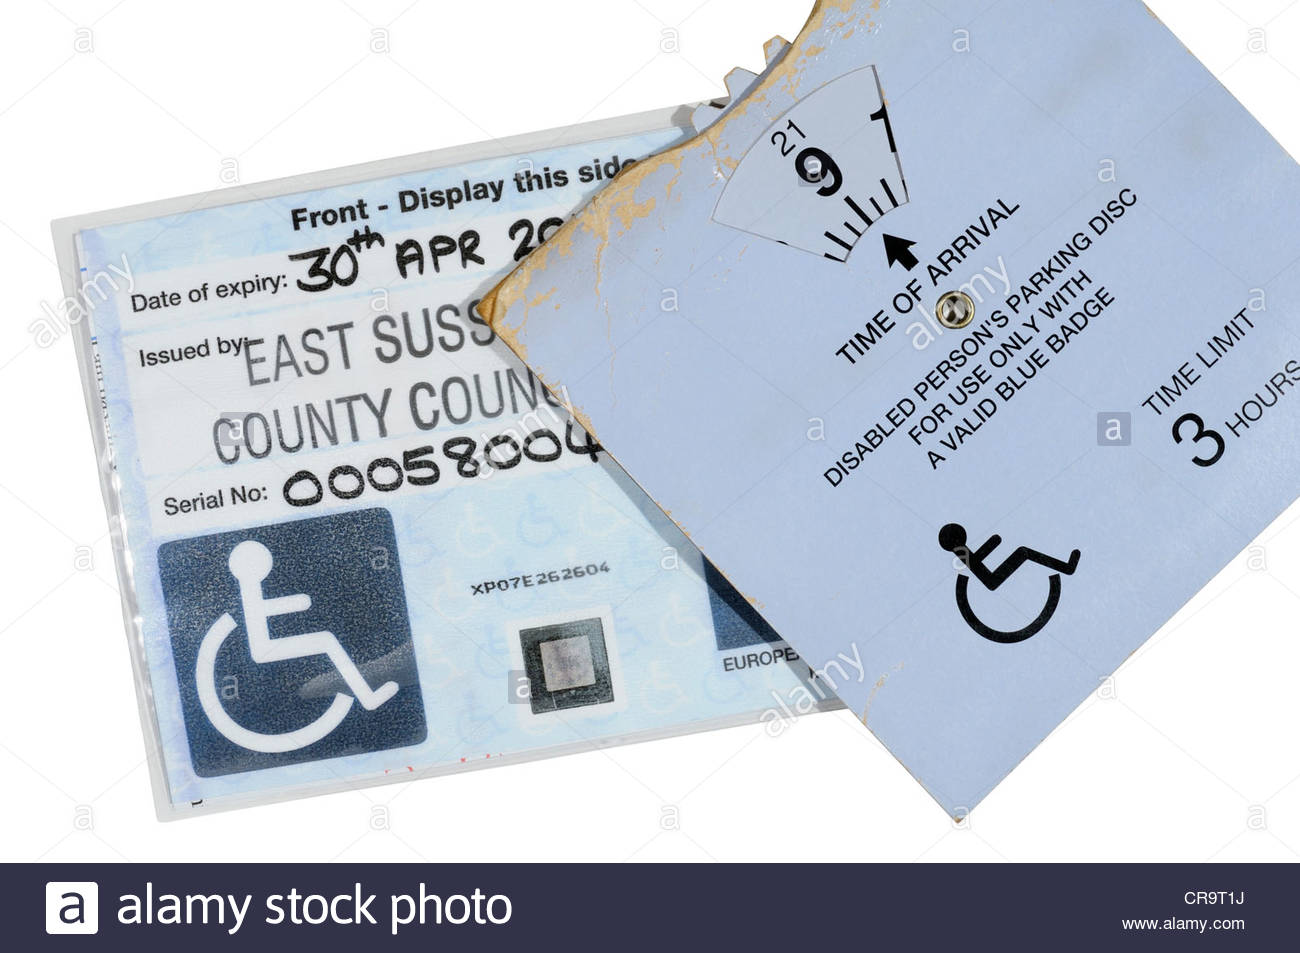 Disability Blue badge and parking clock, England - Stock Image